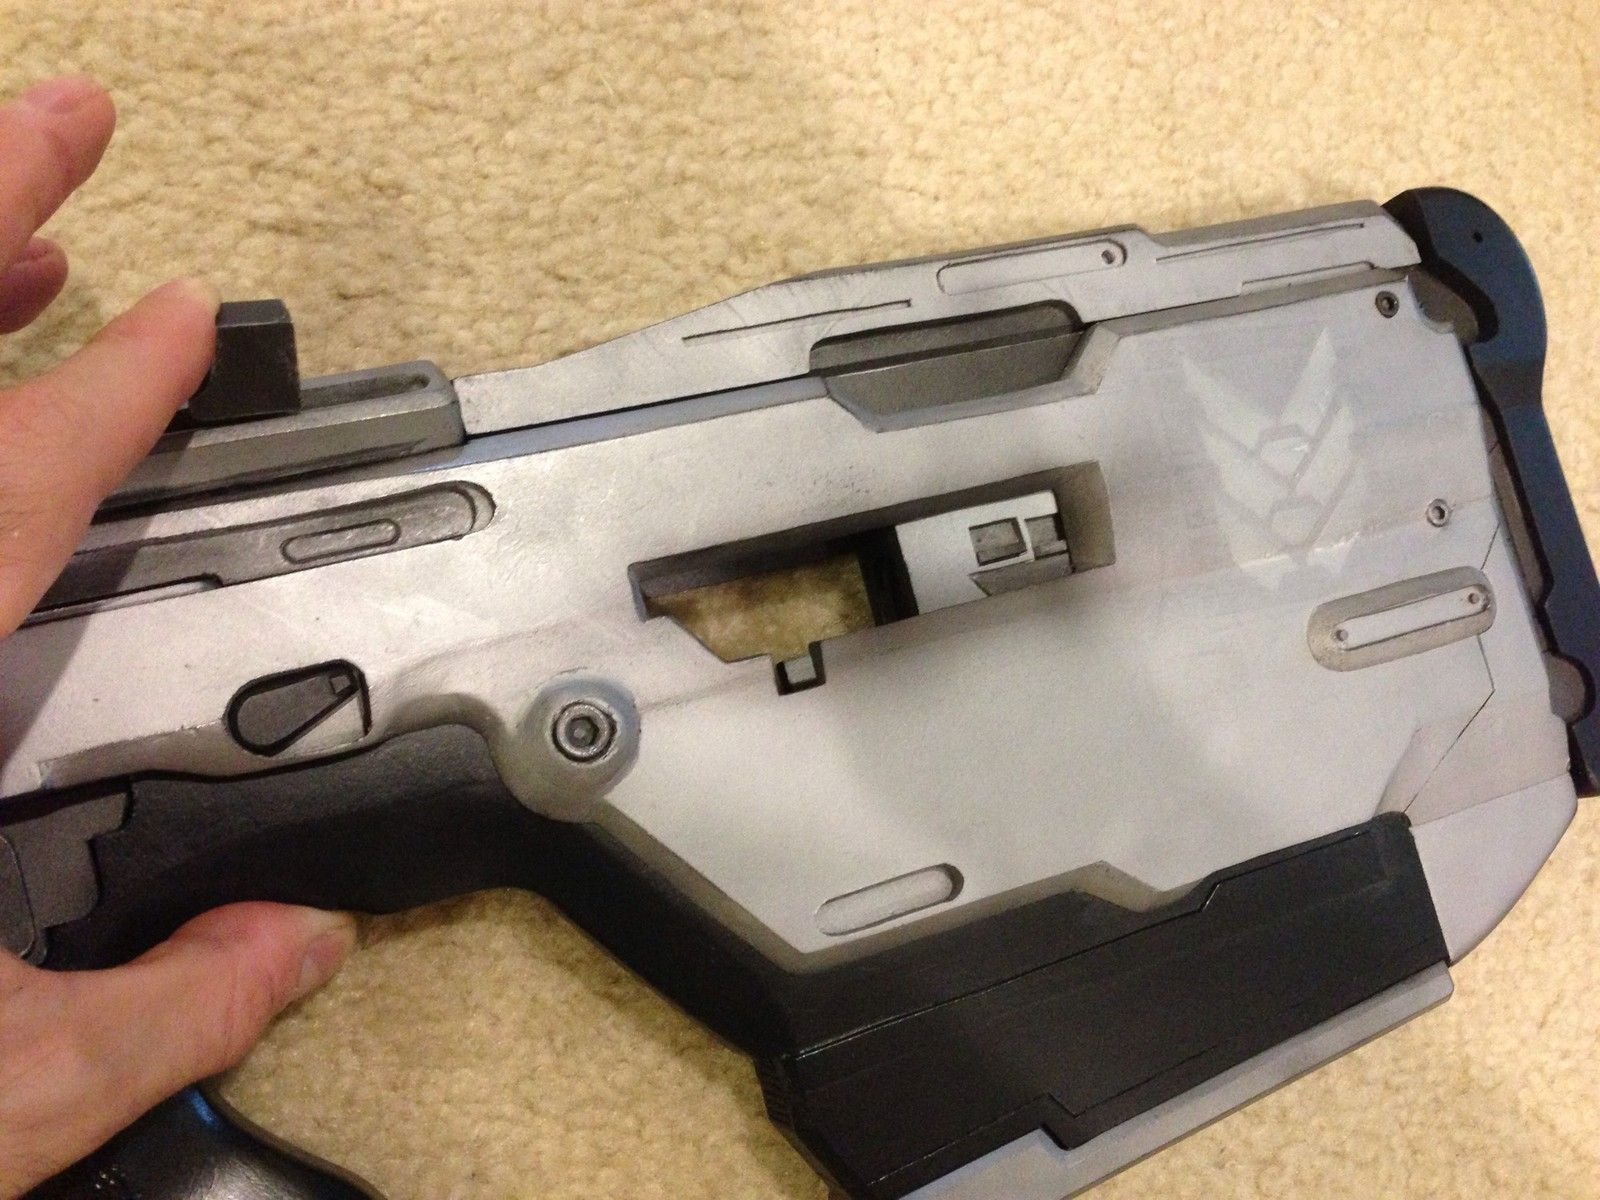 Red 5 vinyl system prop replicas custom fabrication special - Halo 4 Full Size Replica Br85hb Battle Rifle Professionally Built Model Prop Gun